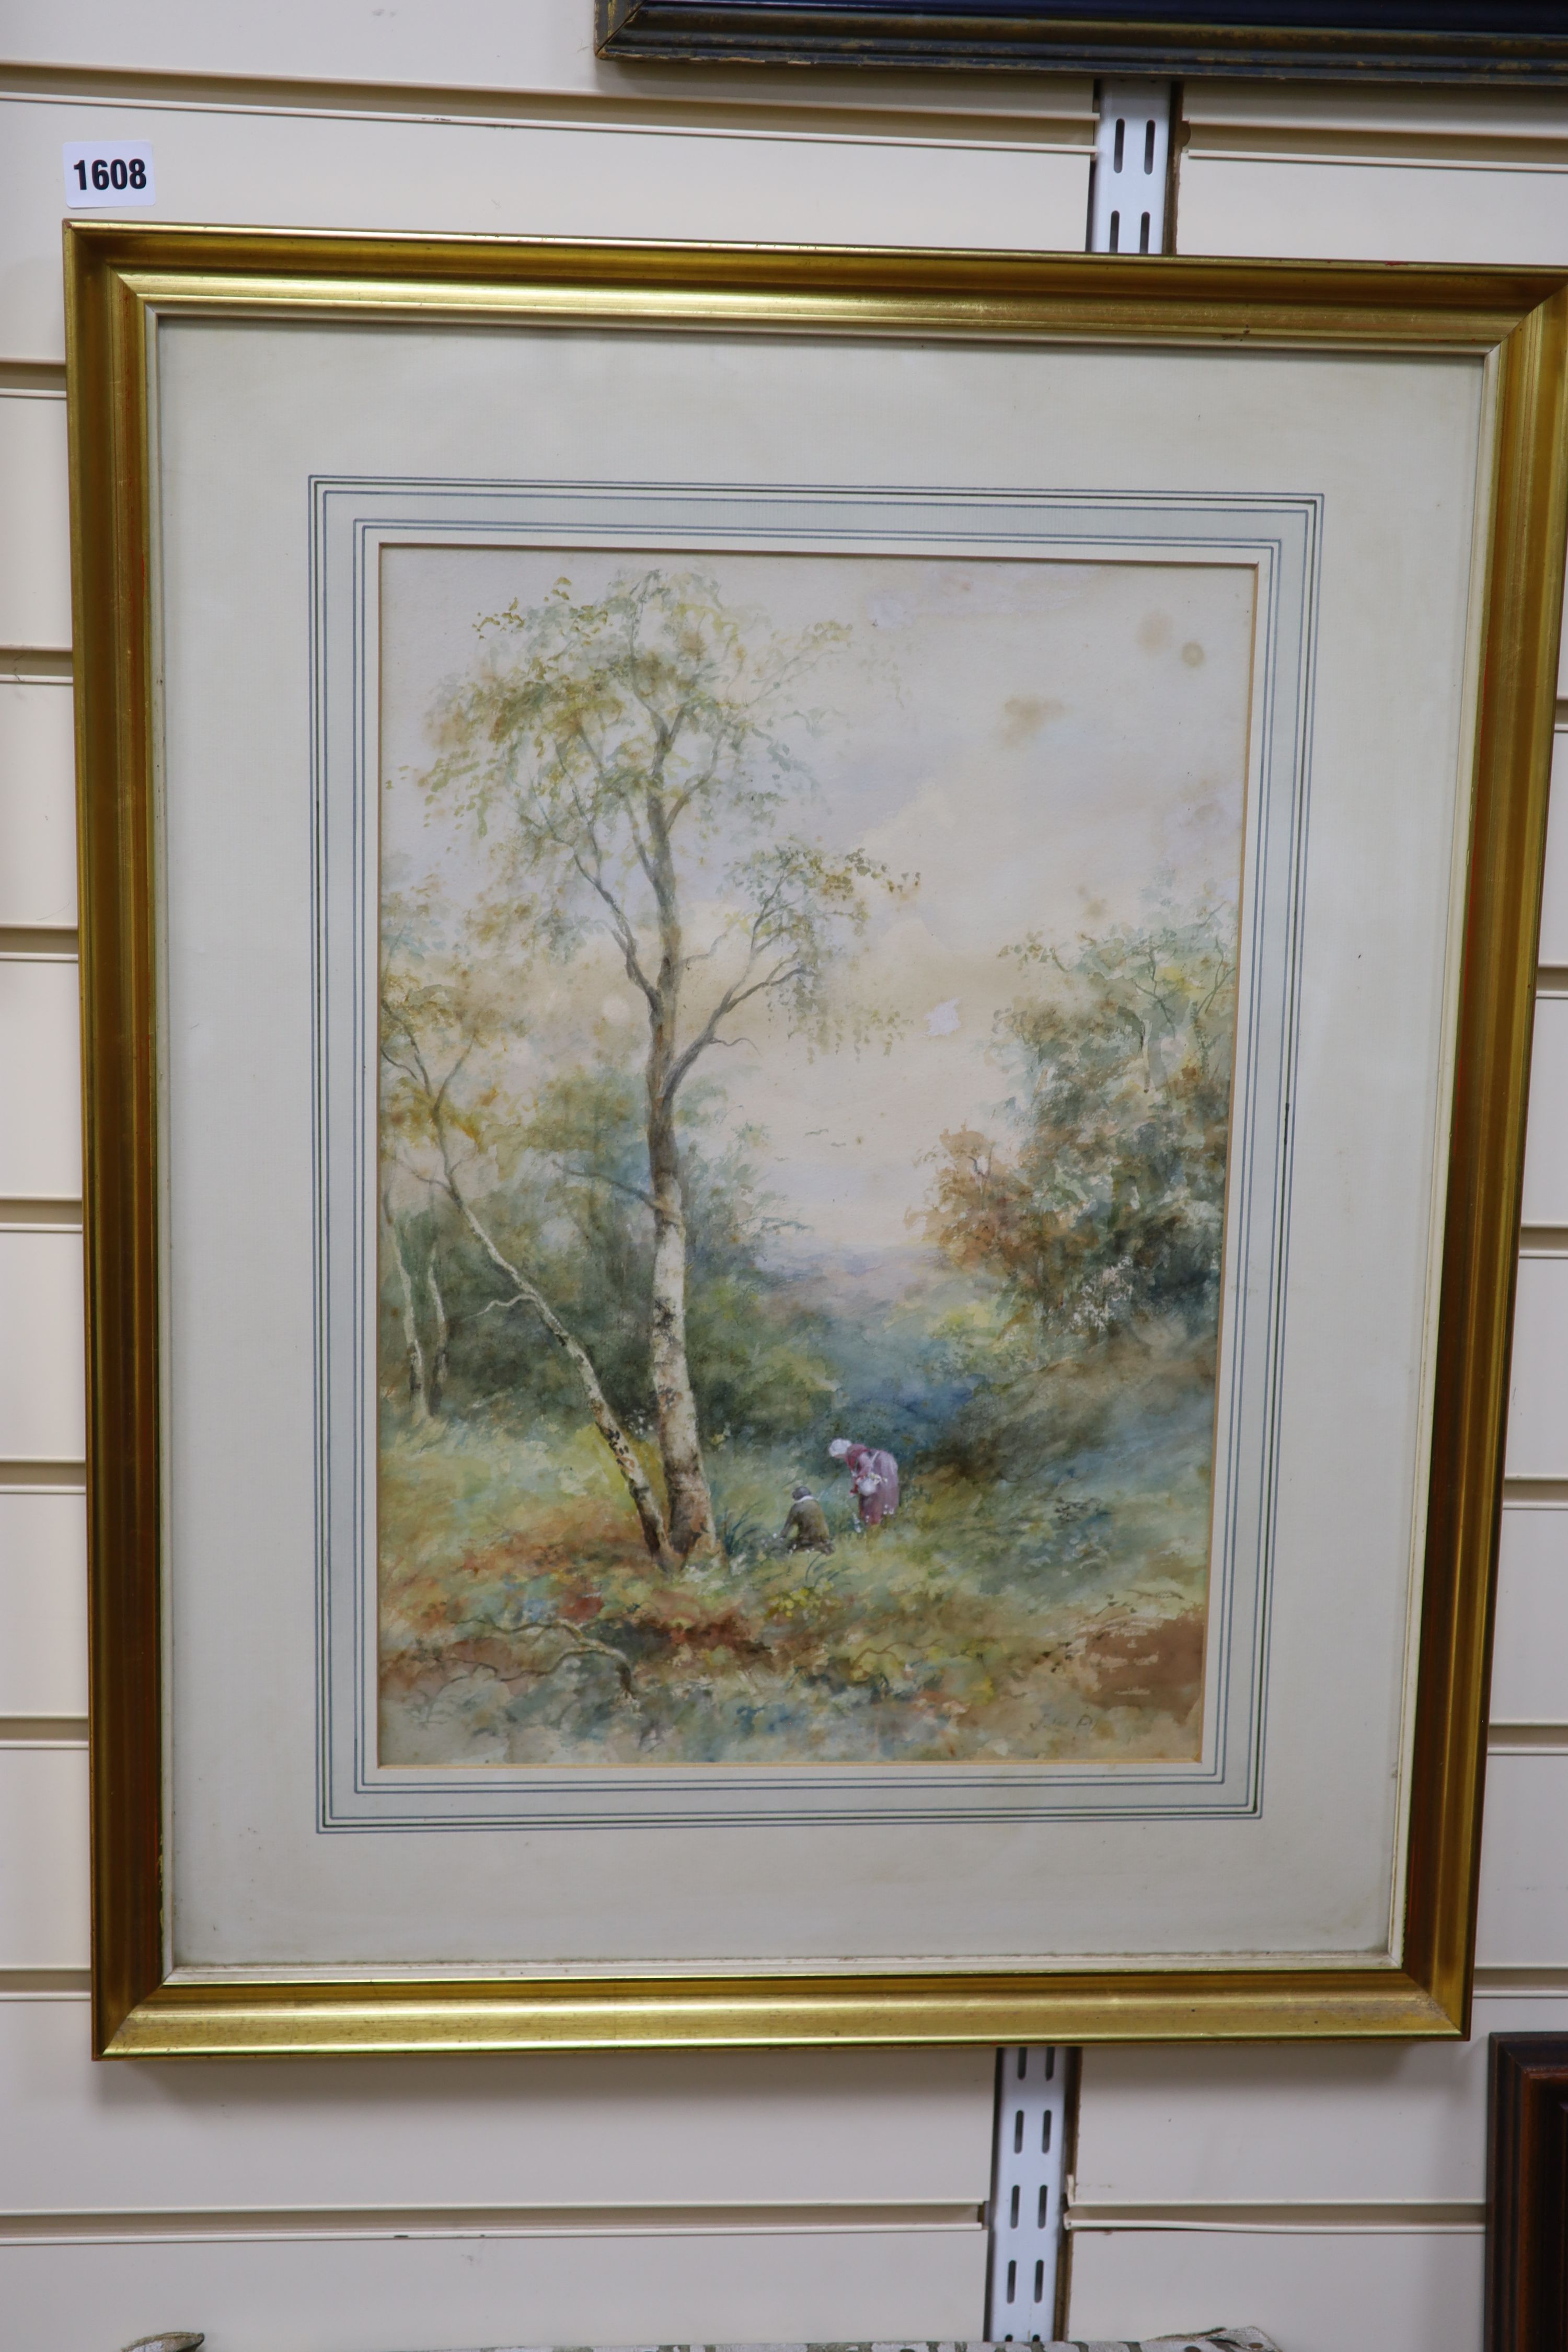 J.W.Philips RA, watercolour, Figures in woodland, signed, 46 x 32cm - Image 2 of 2